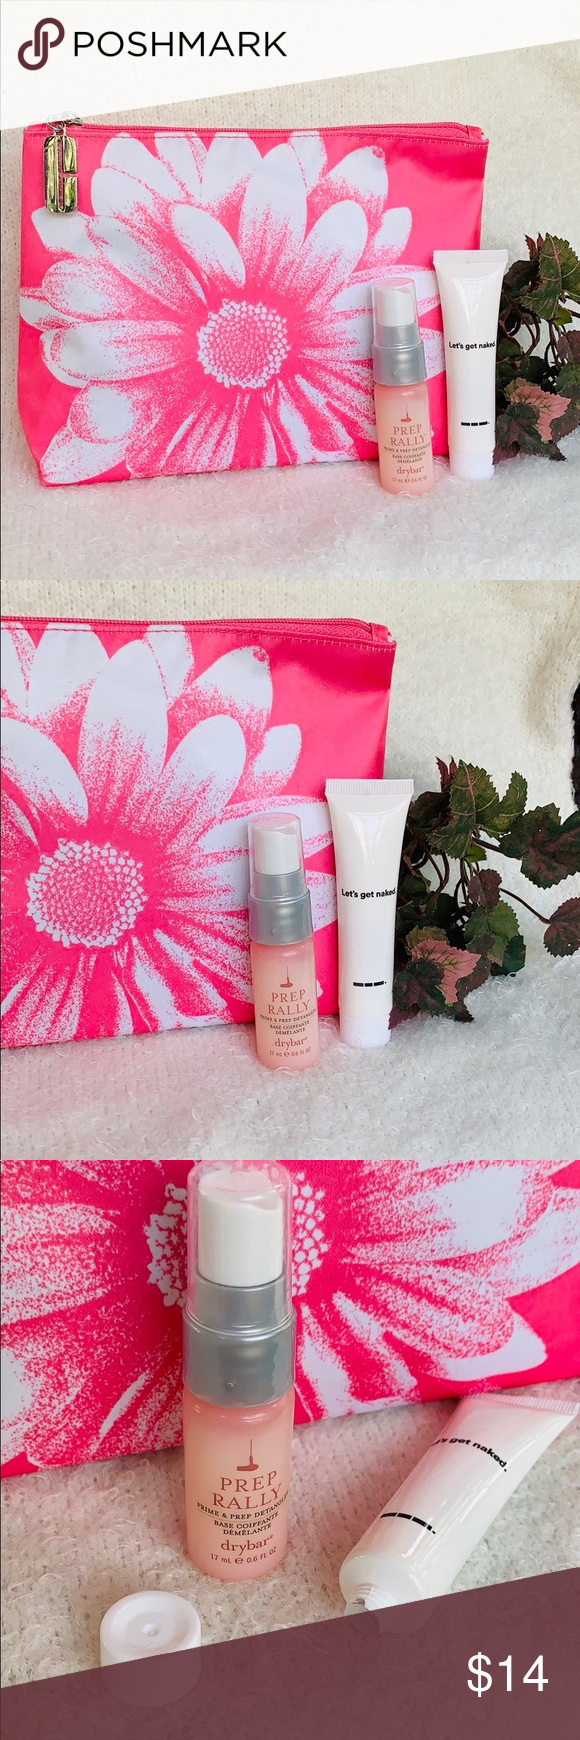 Clinique Bag W/Haircare Samples Deluxe sizes 🆕 Clinique